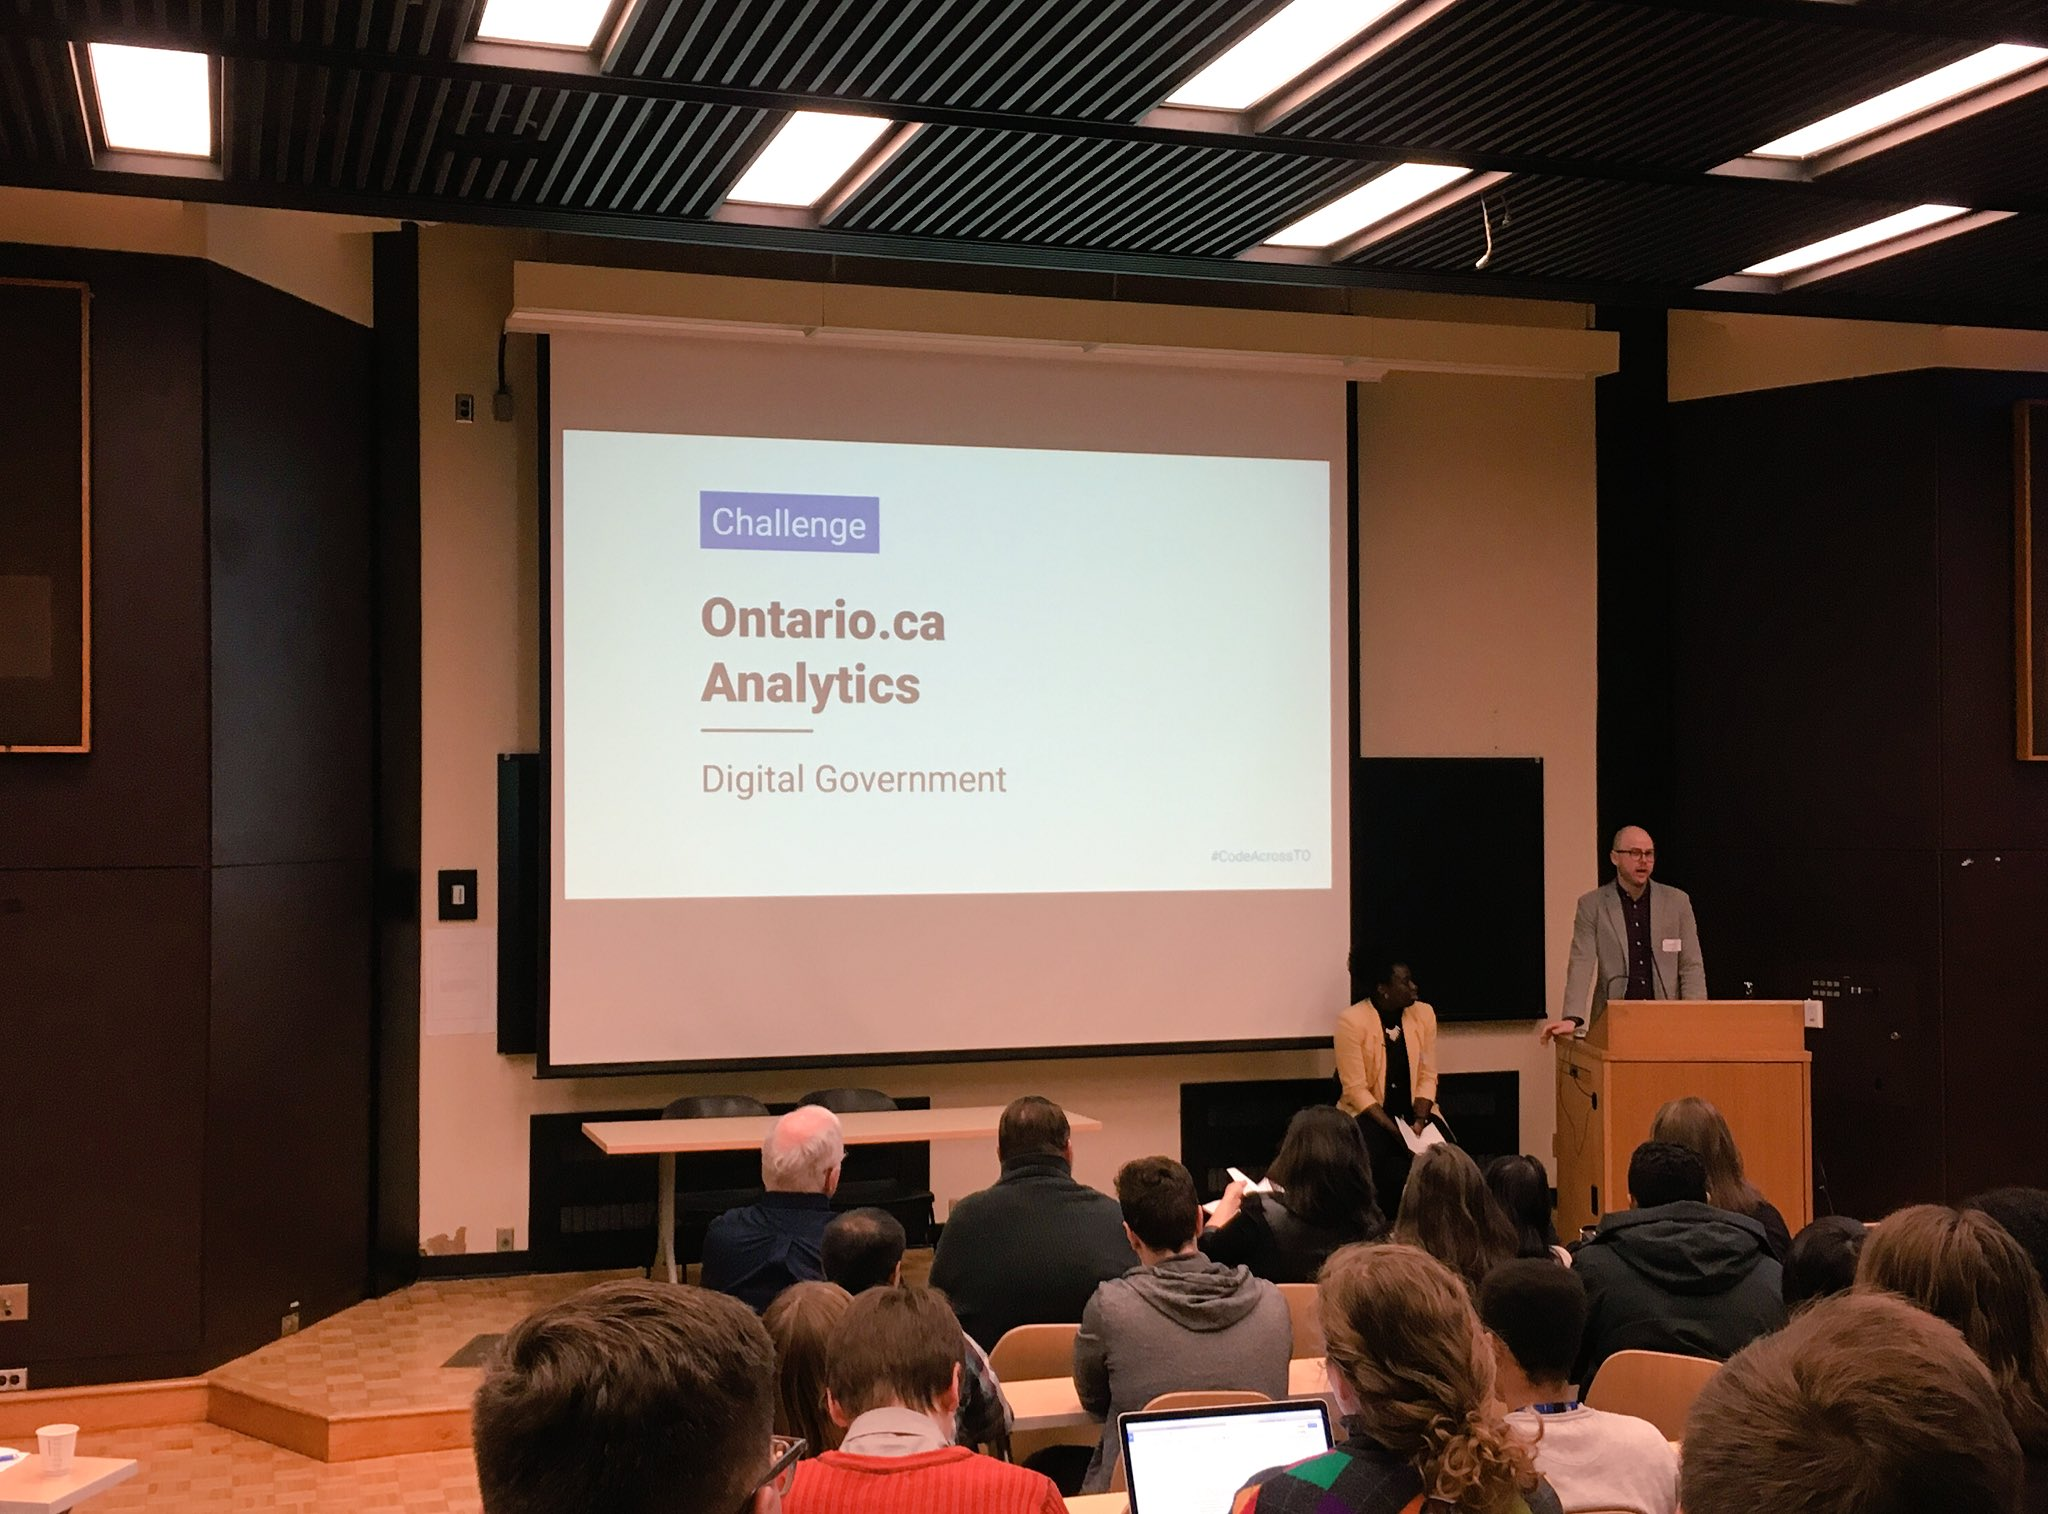 Digital Government Ontario's Ontario.ca challenge. Be the first to see their analytics data. Help build tools for the public #CodeAcrossTO https://t.co/EbVp2IYVQv